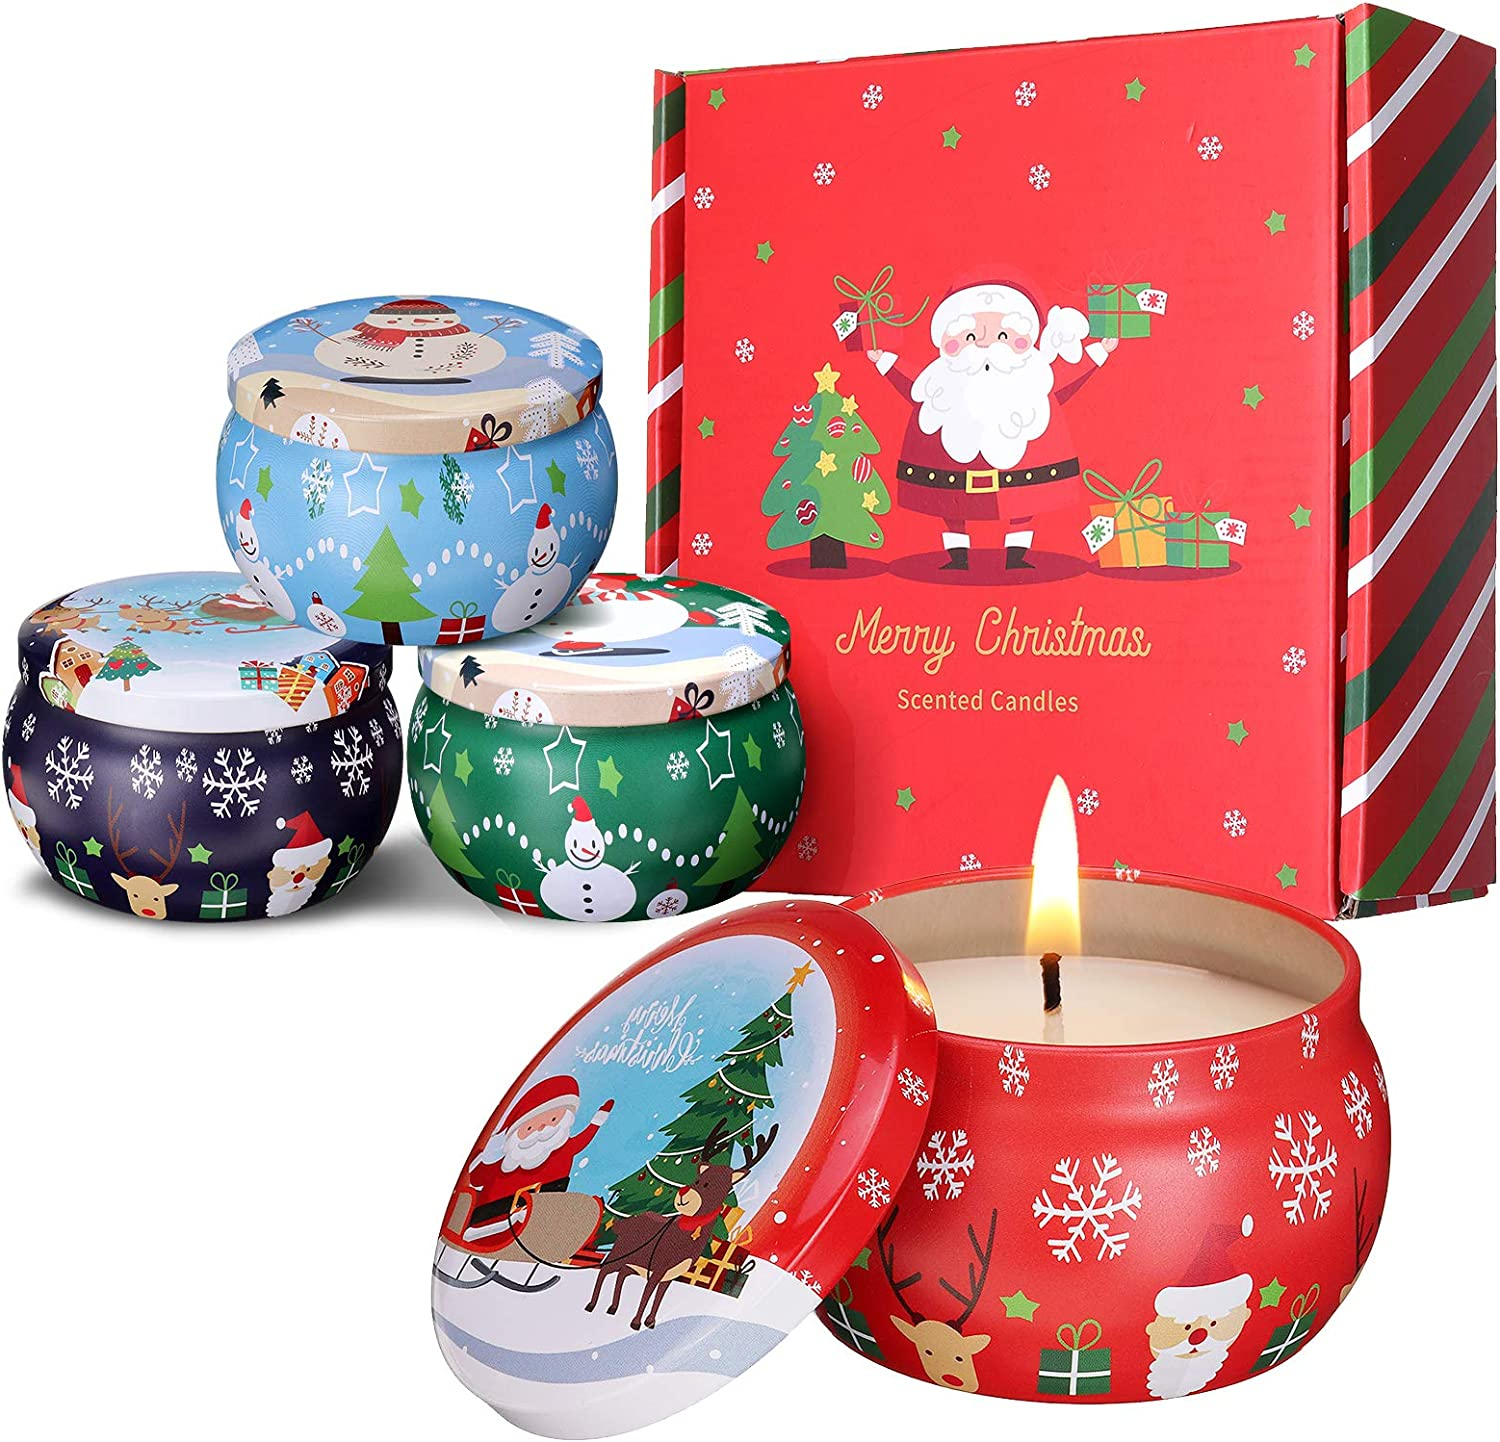 JOSEKO Scented Candles Portable Travel Tin Christmas design set 4 WAS £15.99 NOW £9.59 w/code JOSEKOGIFT @ Amazon